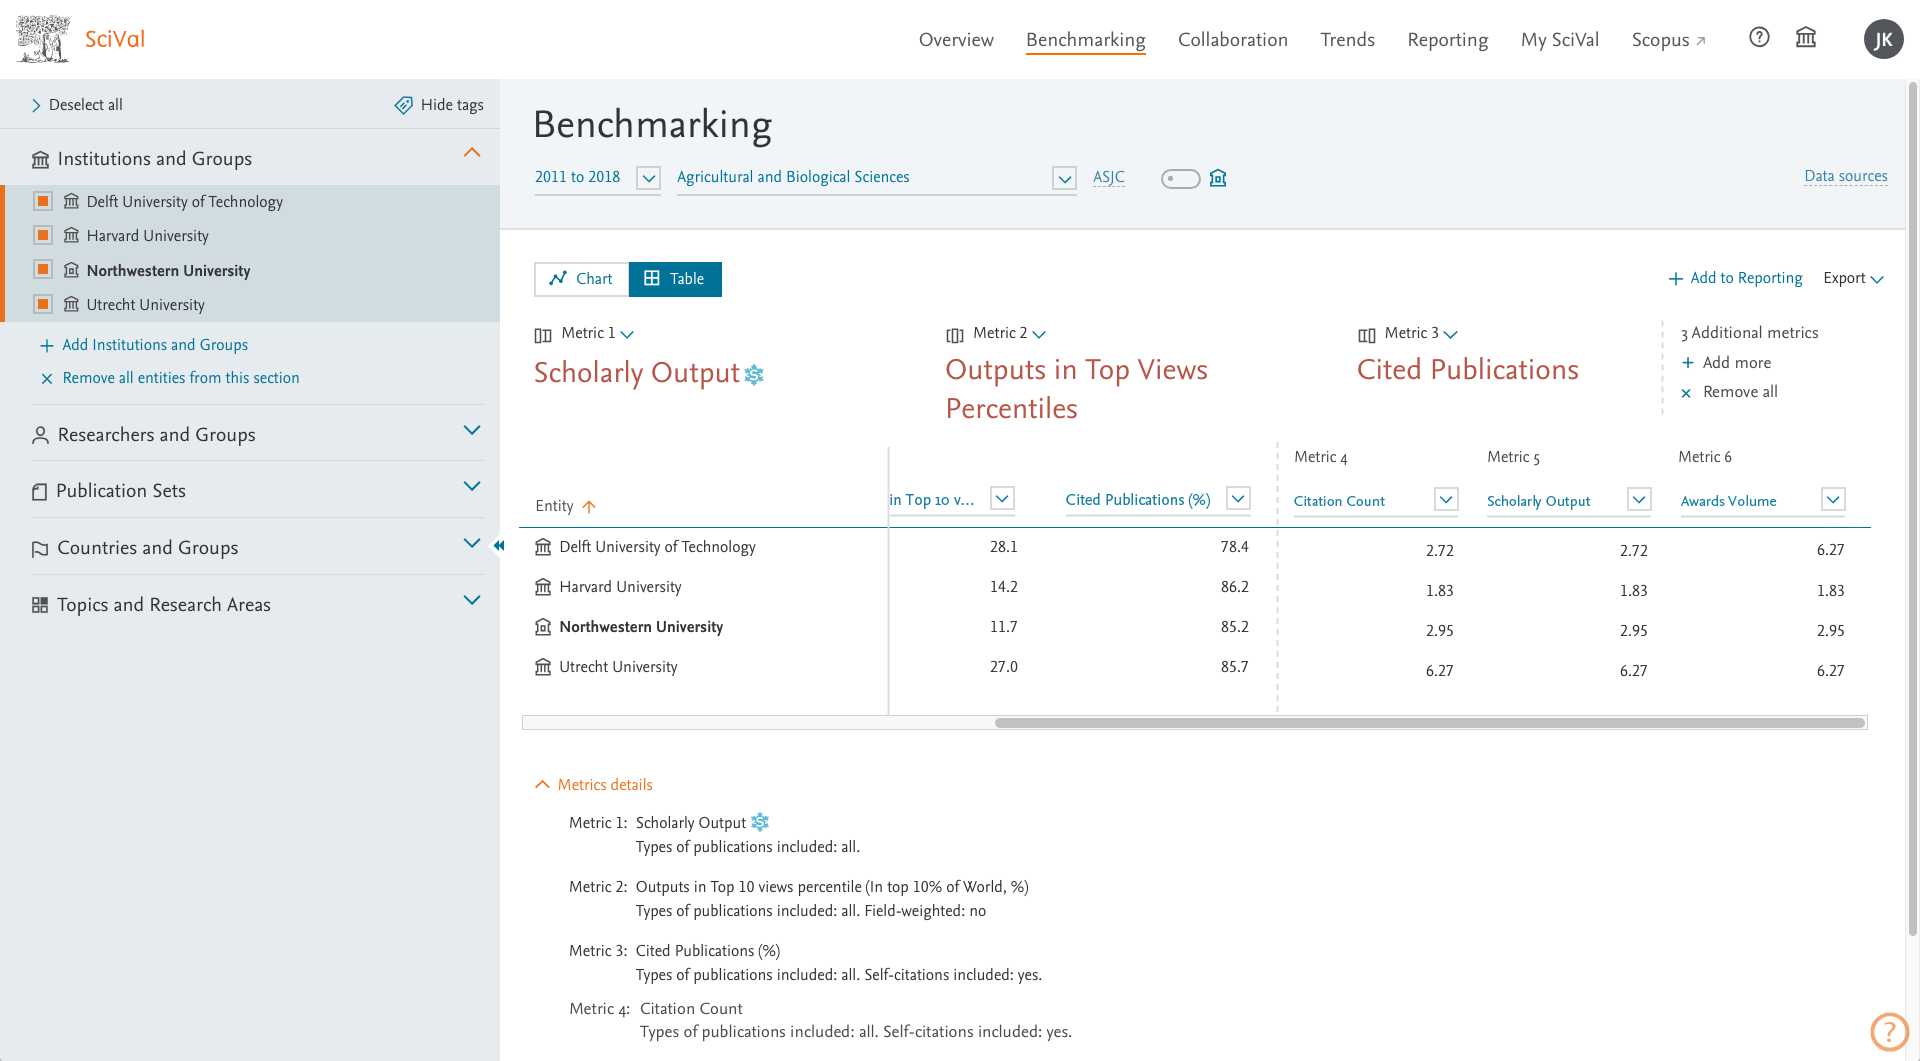 Add an additional 20 metrics to the Benchmarking table